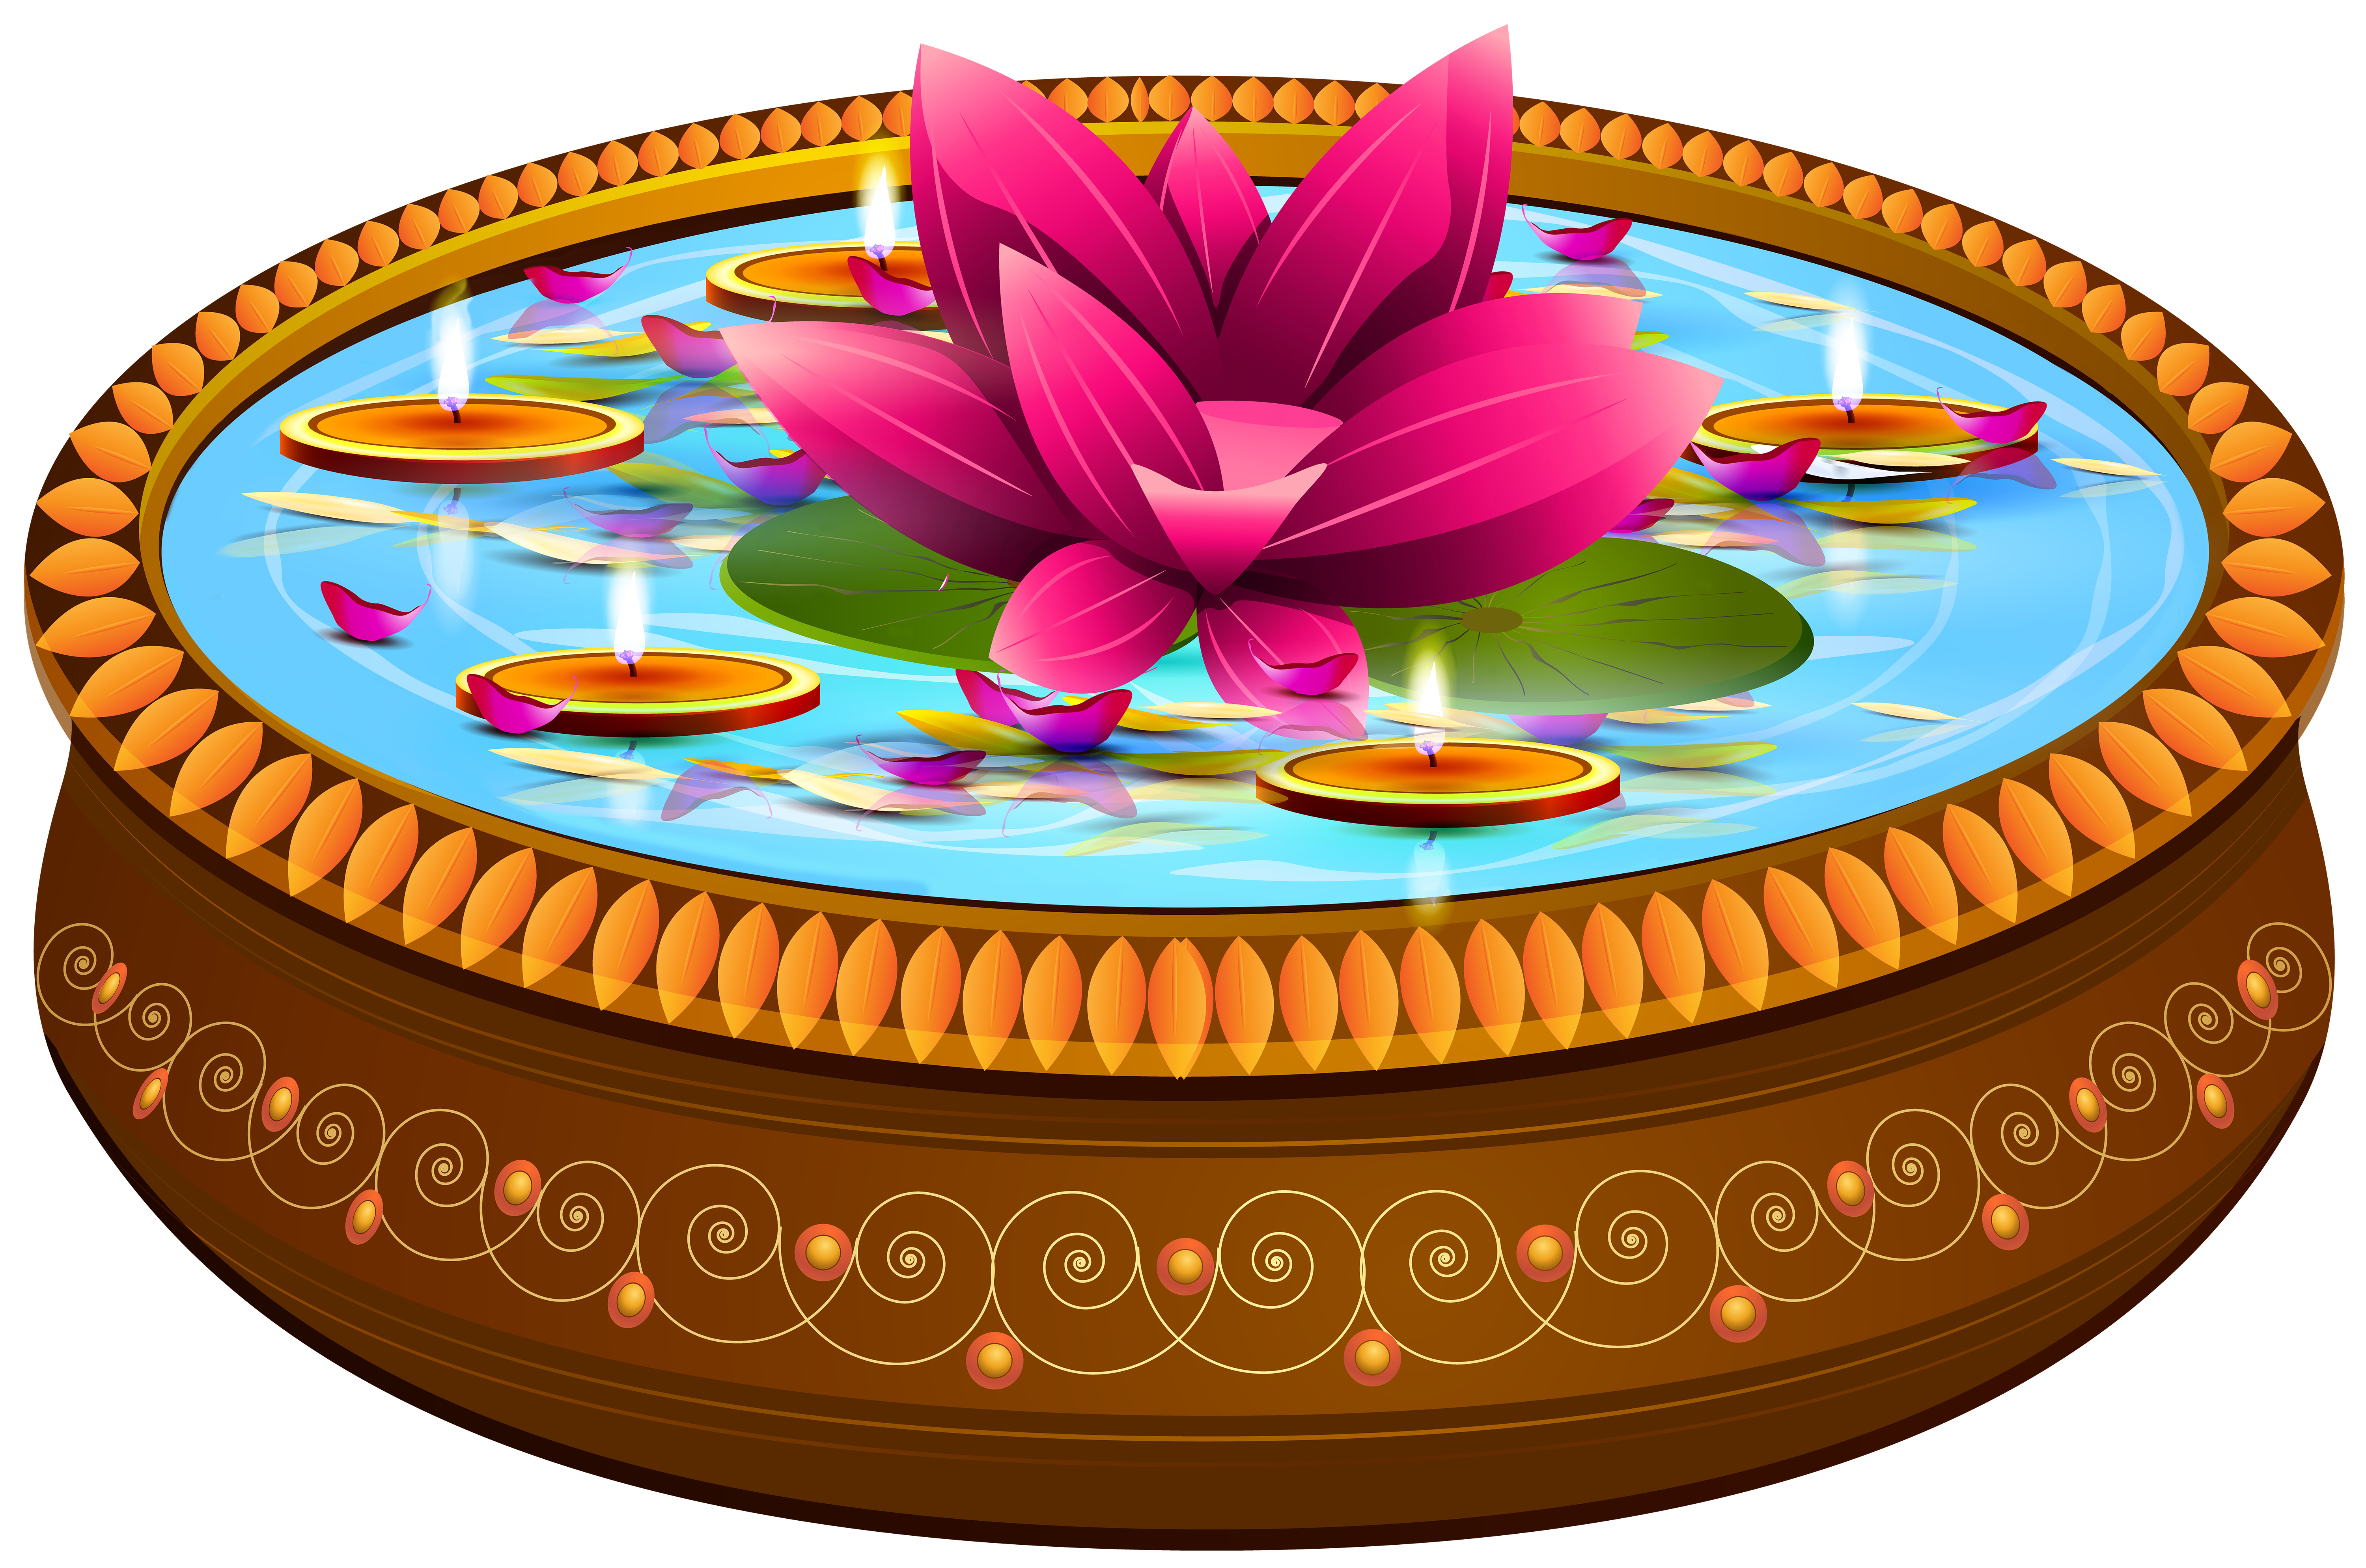 Lace clipart flower indian. Floating candles and lotus